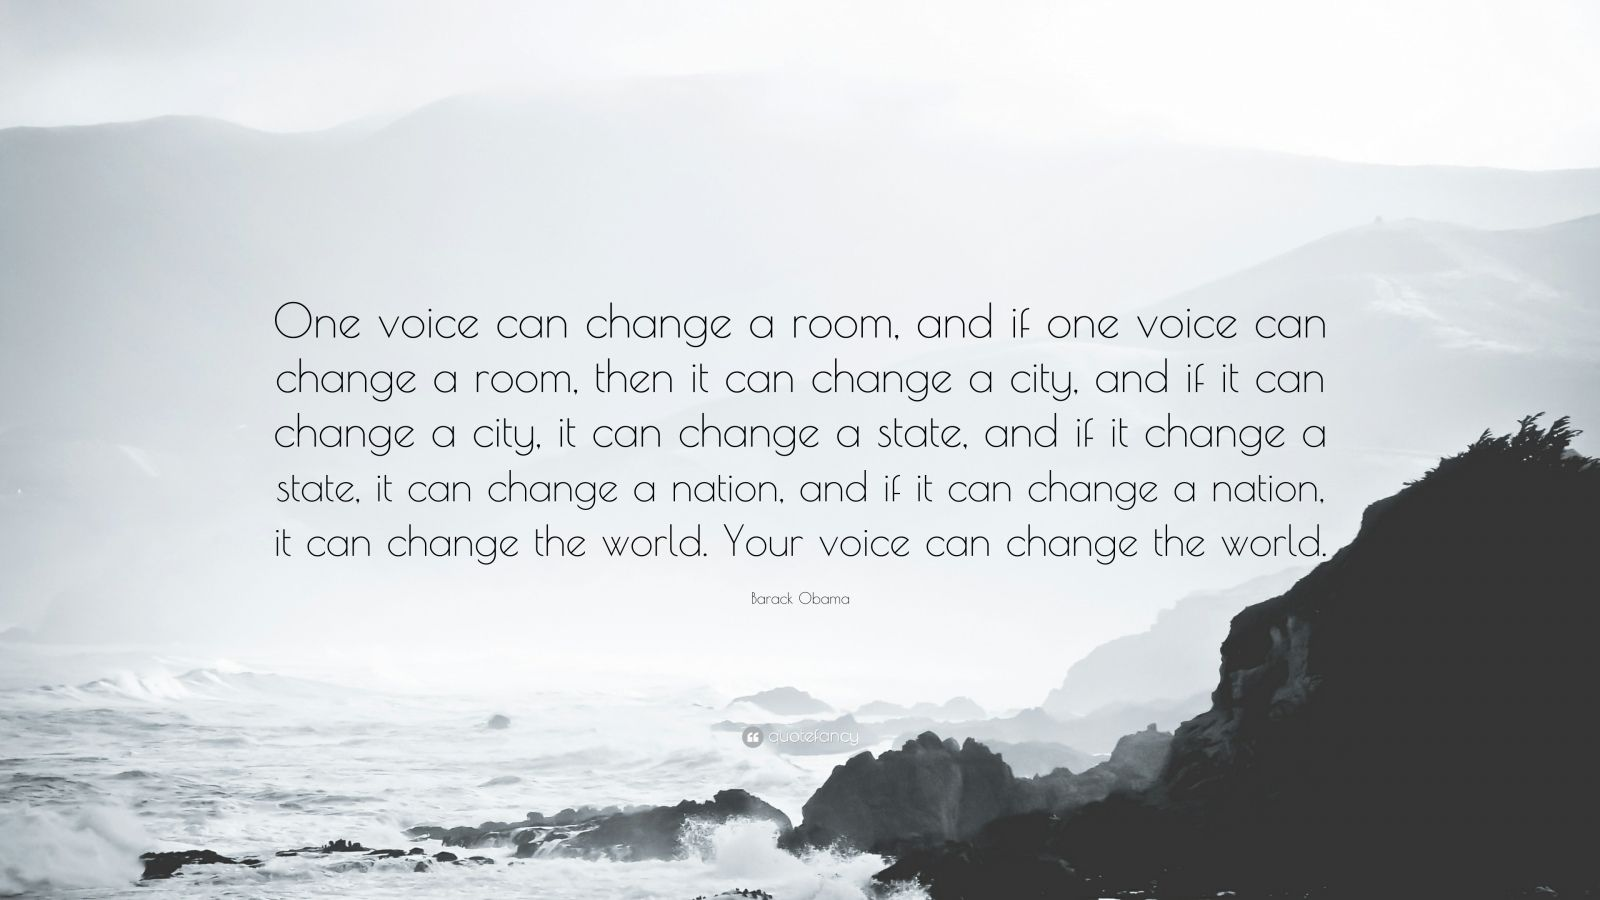 """Barack Obama Quote: """"One voice can change a room, and if one voice can change a room, then it can change a city, and if it can change a city, it can change a state, and if it change a state, it can change a nation, and if it can change a nation, it can change the world. Your voice can change the world."""""""